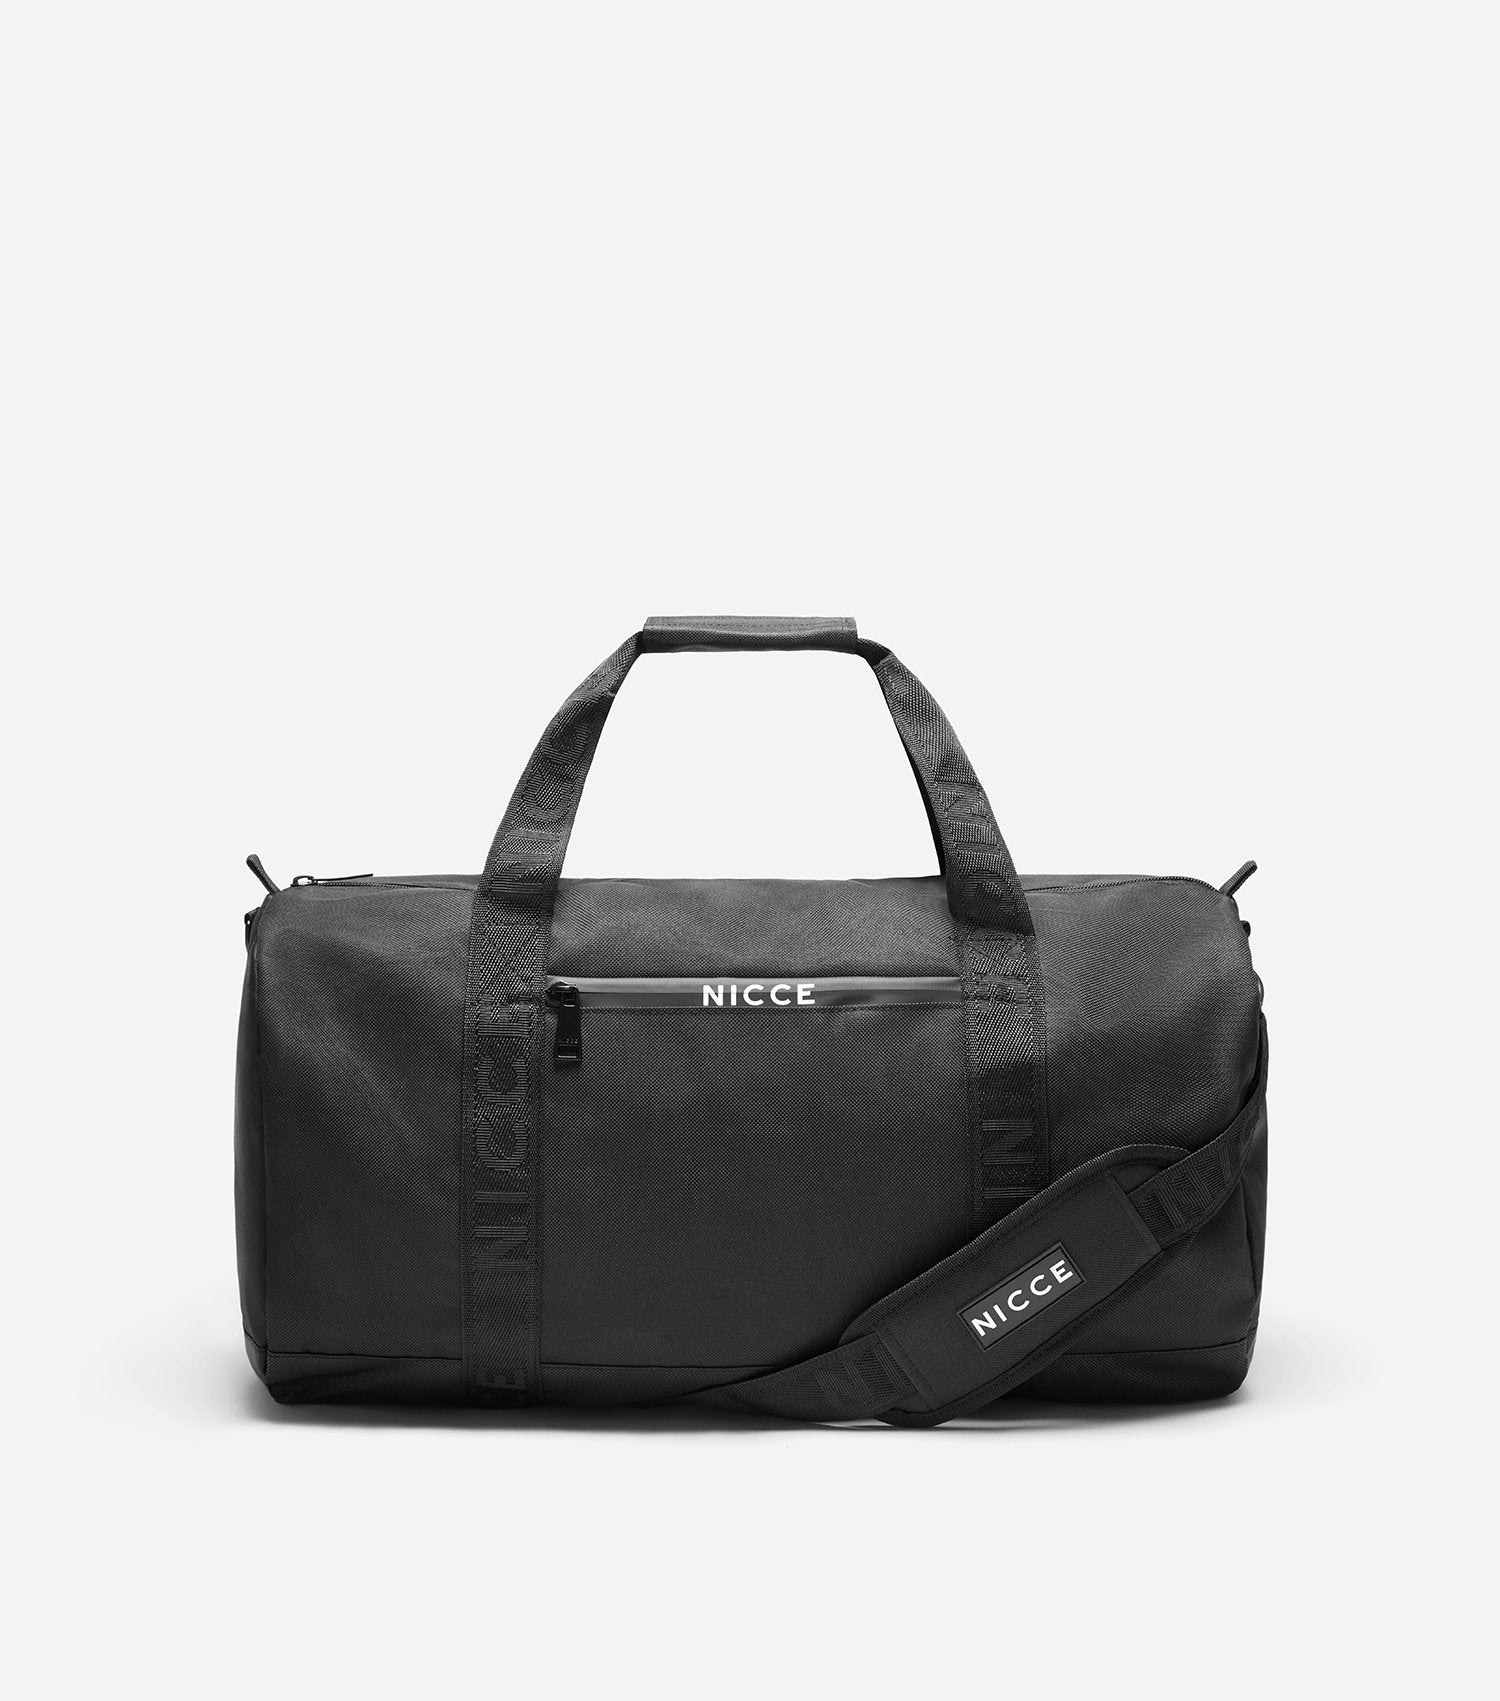 NICCE Trace Overnight Bag | Black, Bags